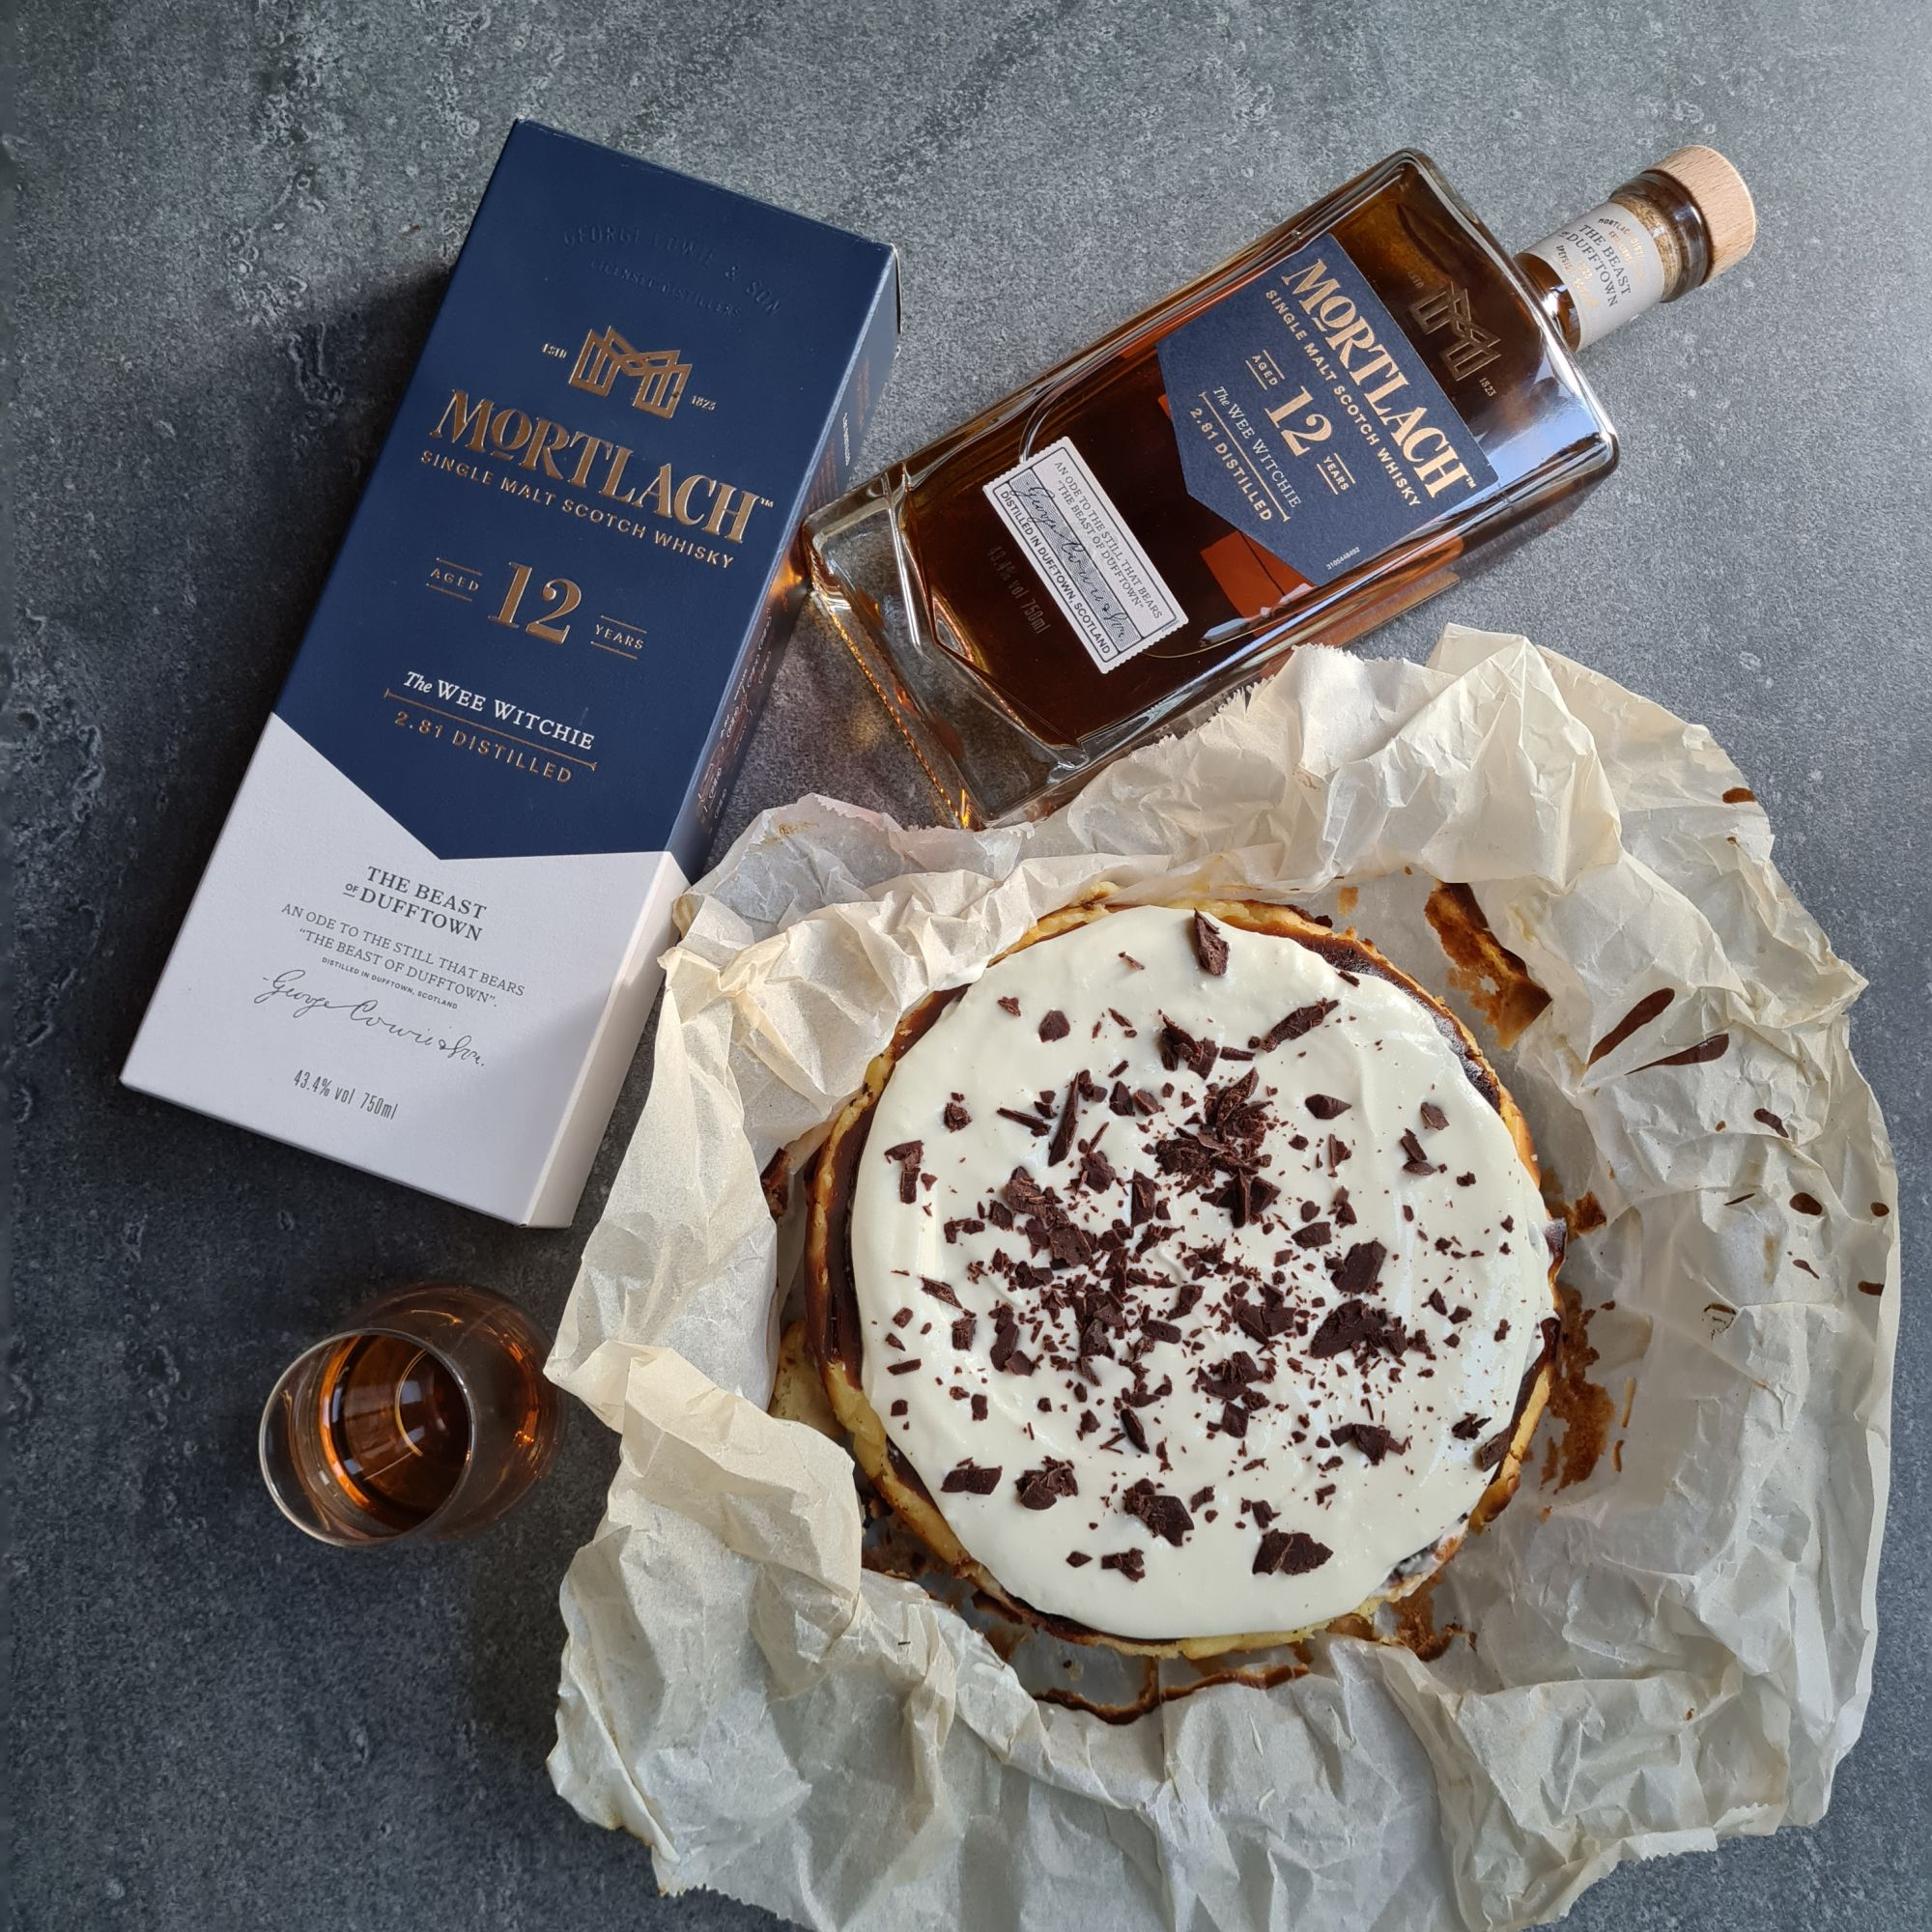 Mortlach Whisky and a Burnt Basque Cheesecake by Chele Gonzalez